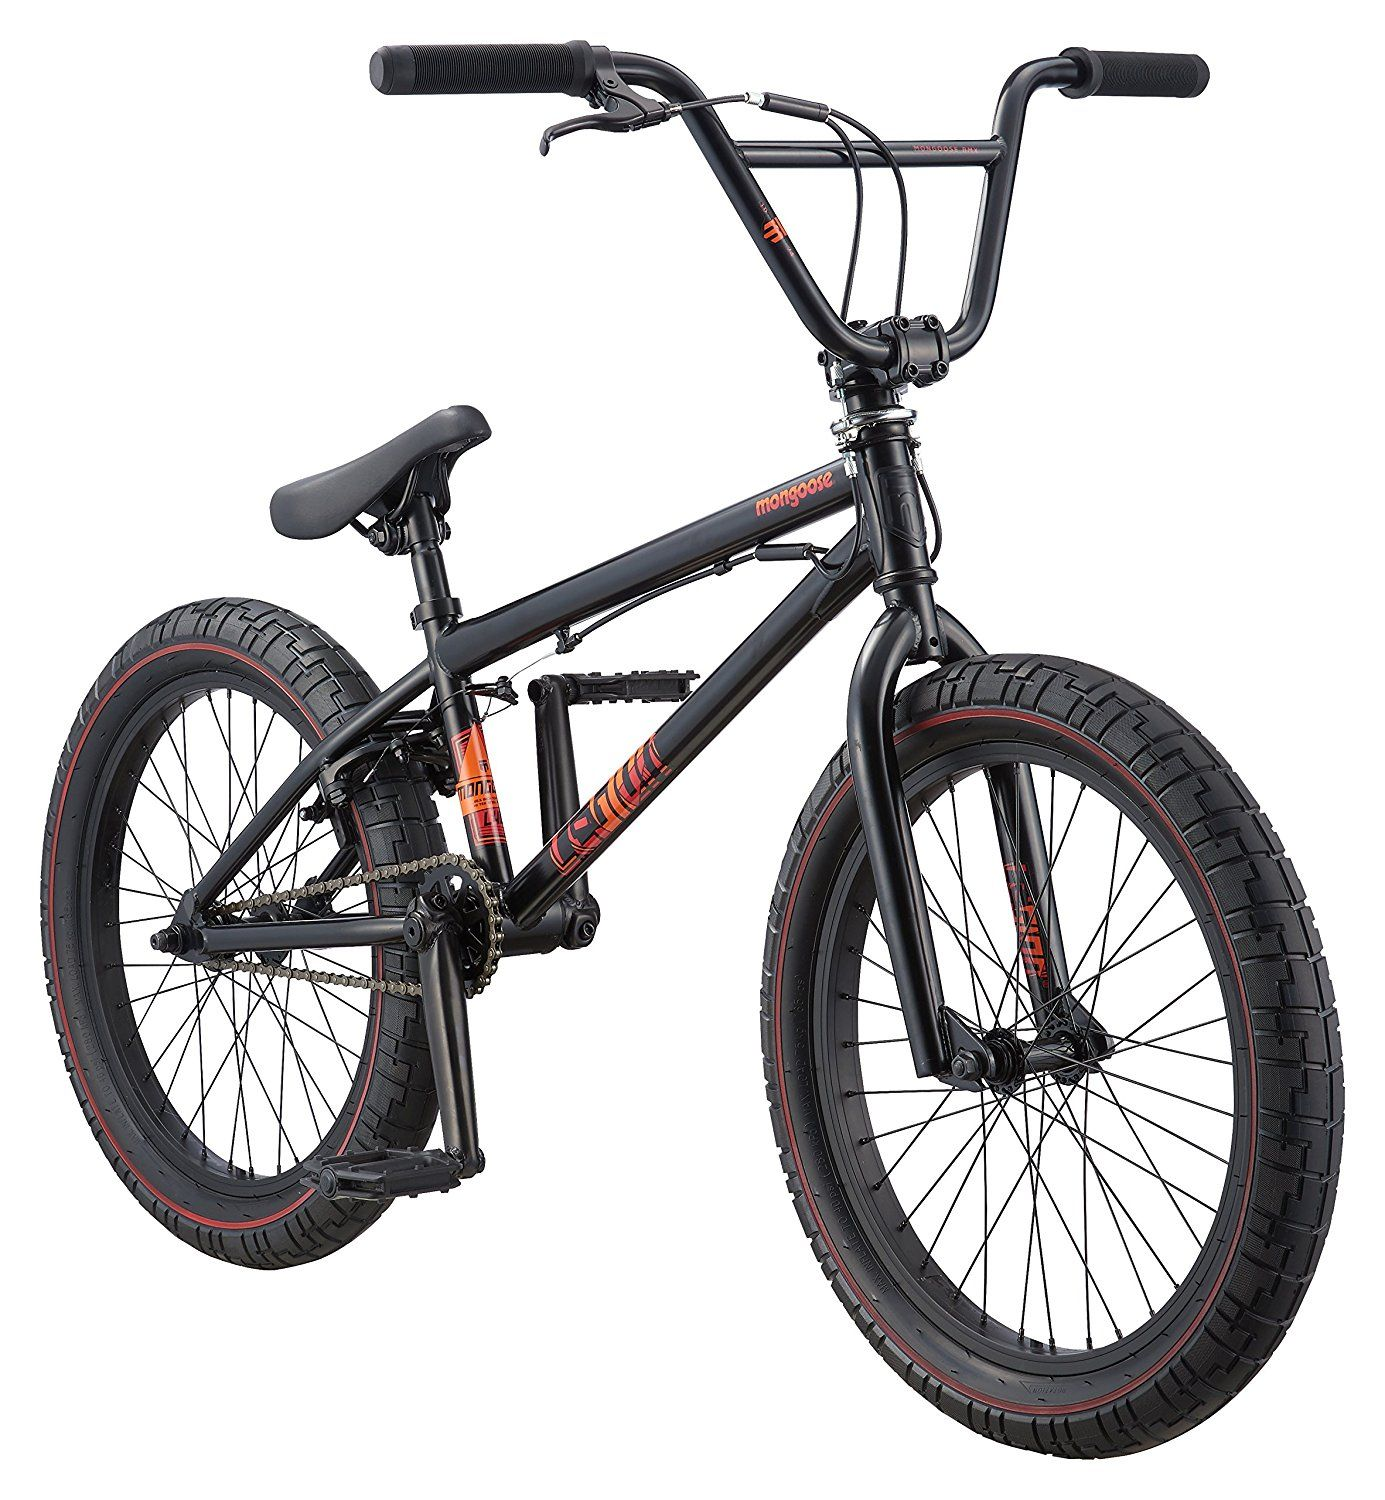 15 Best Bmx Bikes Reviews In 2020 Bmx Bikes Best Bmx